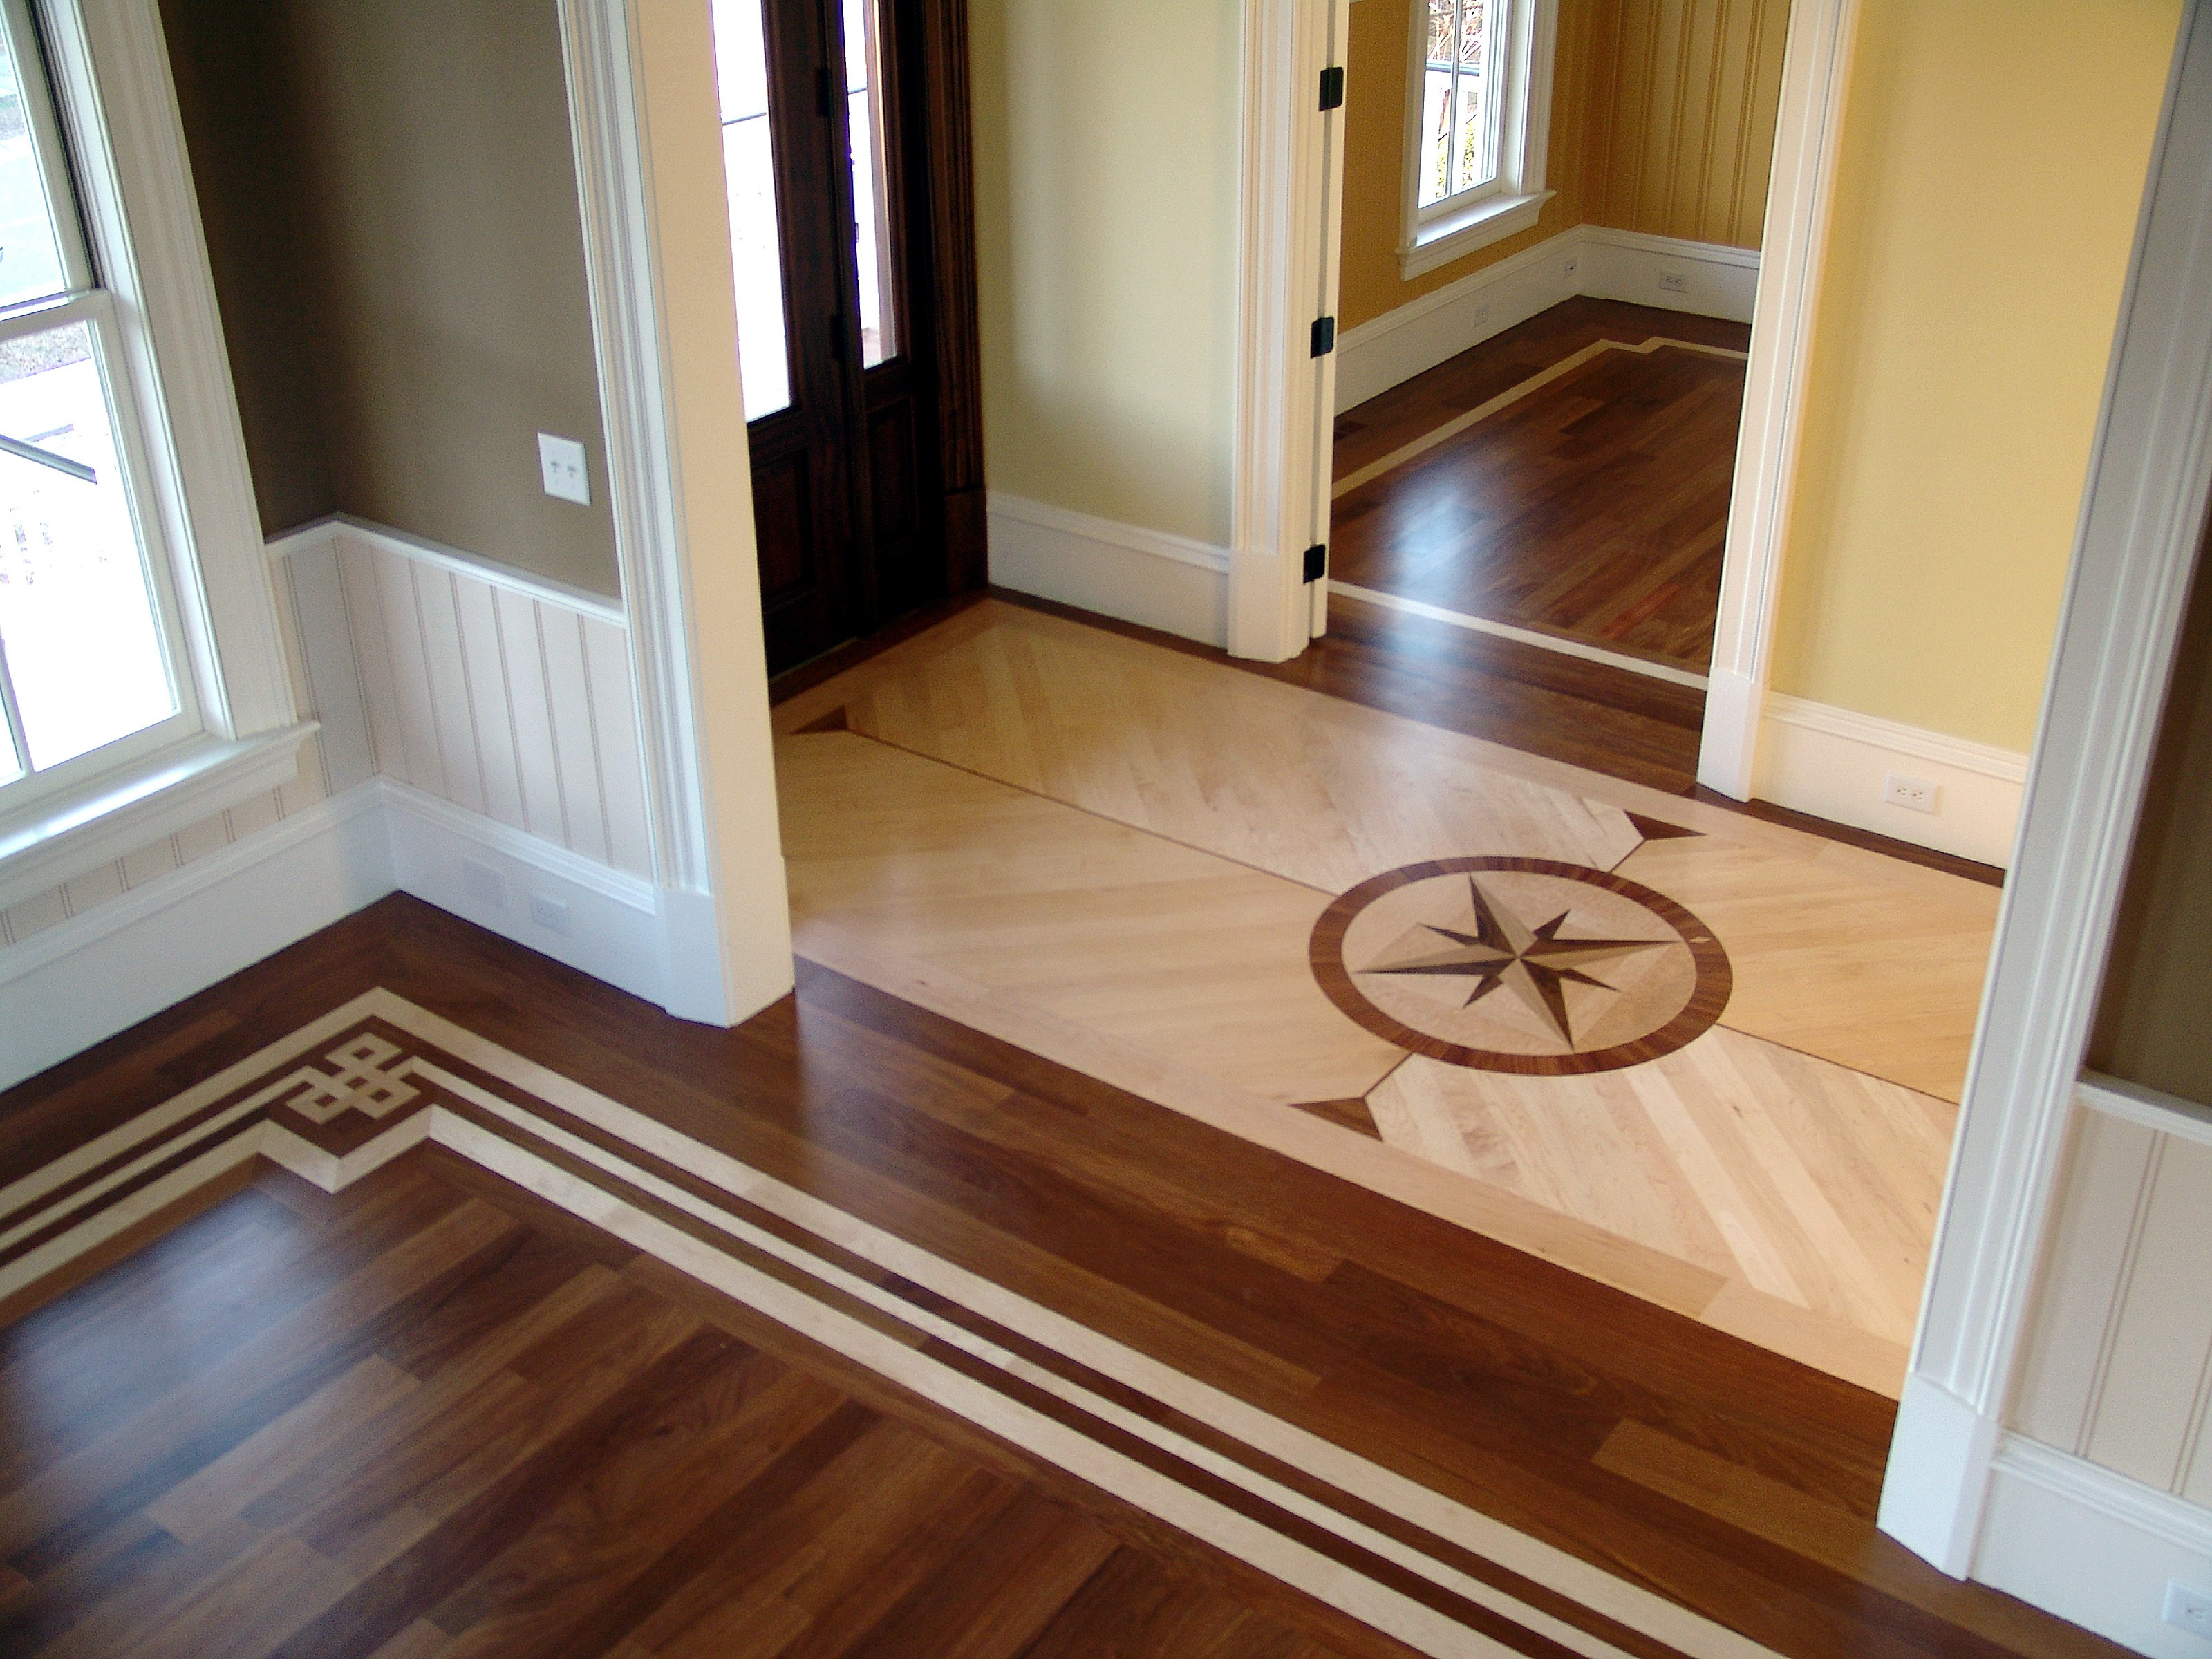 installing solid hardwood floors of imperial wood floors madison wi hardwood floors hardwood floor in home a